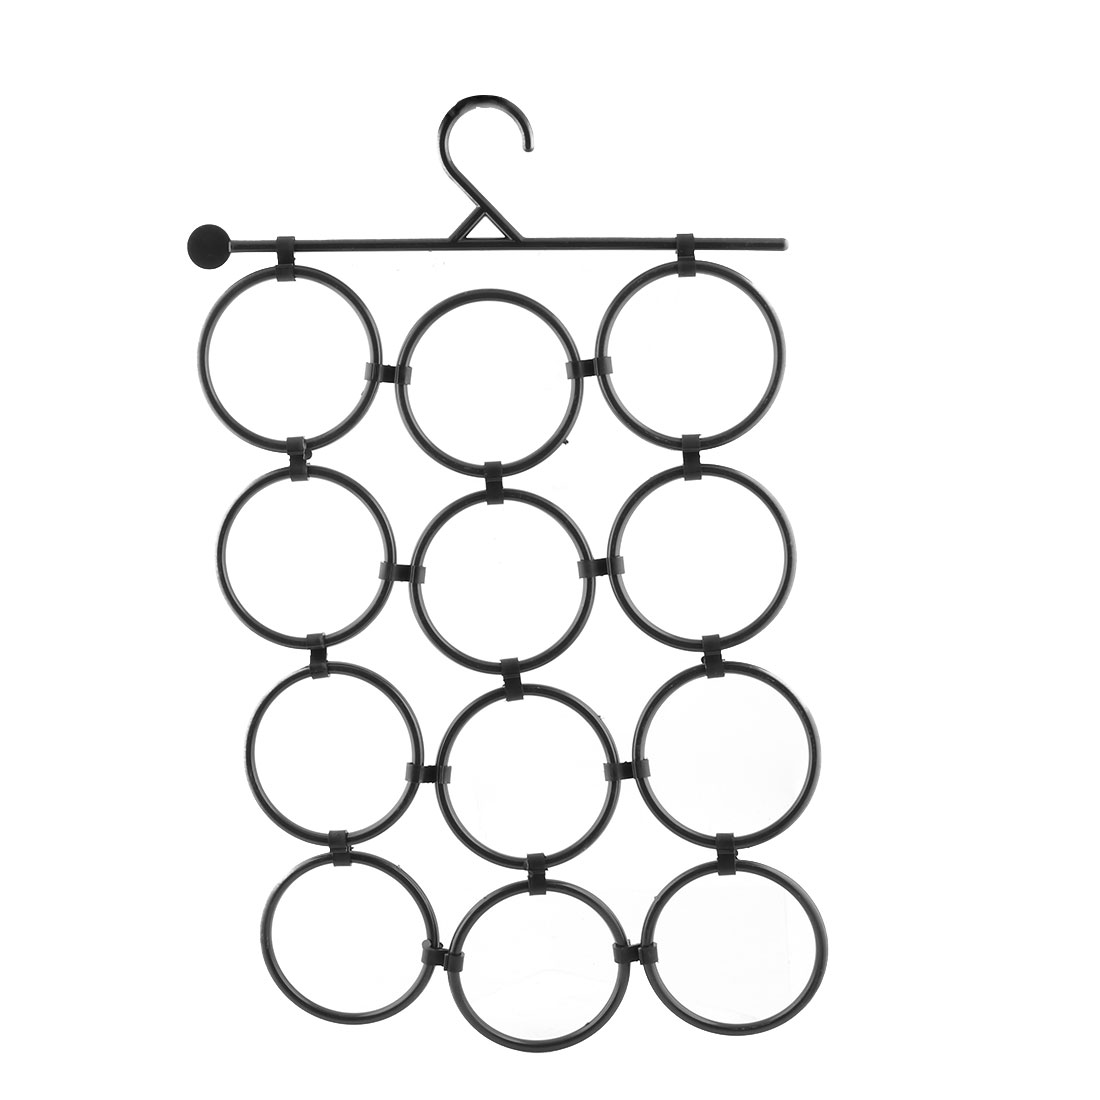 Family Plastic 12 Circles Scarf Clothes Socks Towel Rack Holder Hanger Black